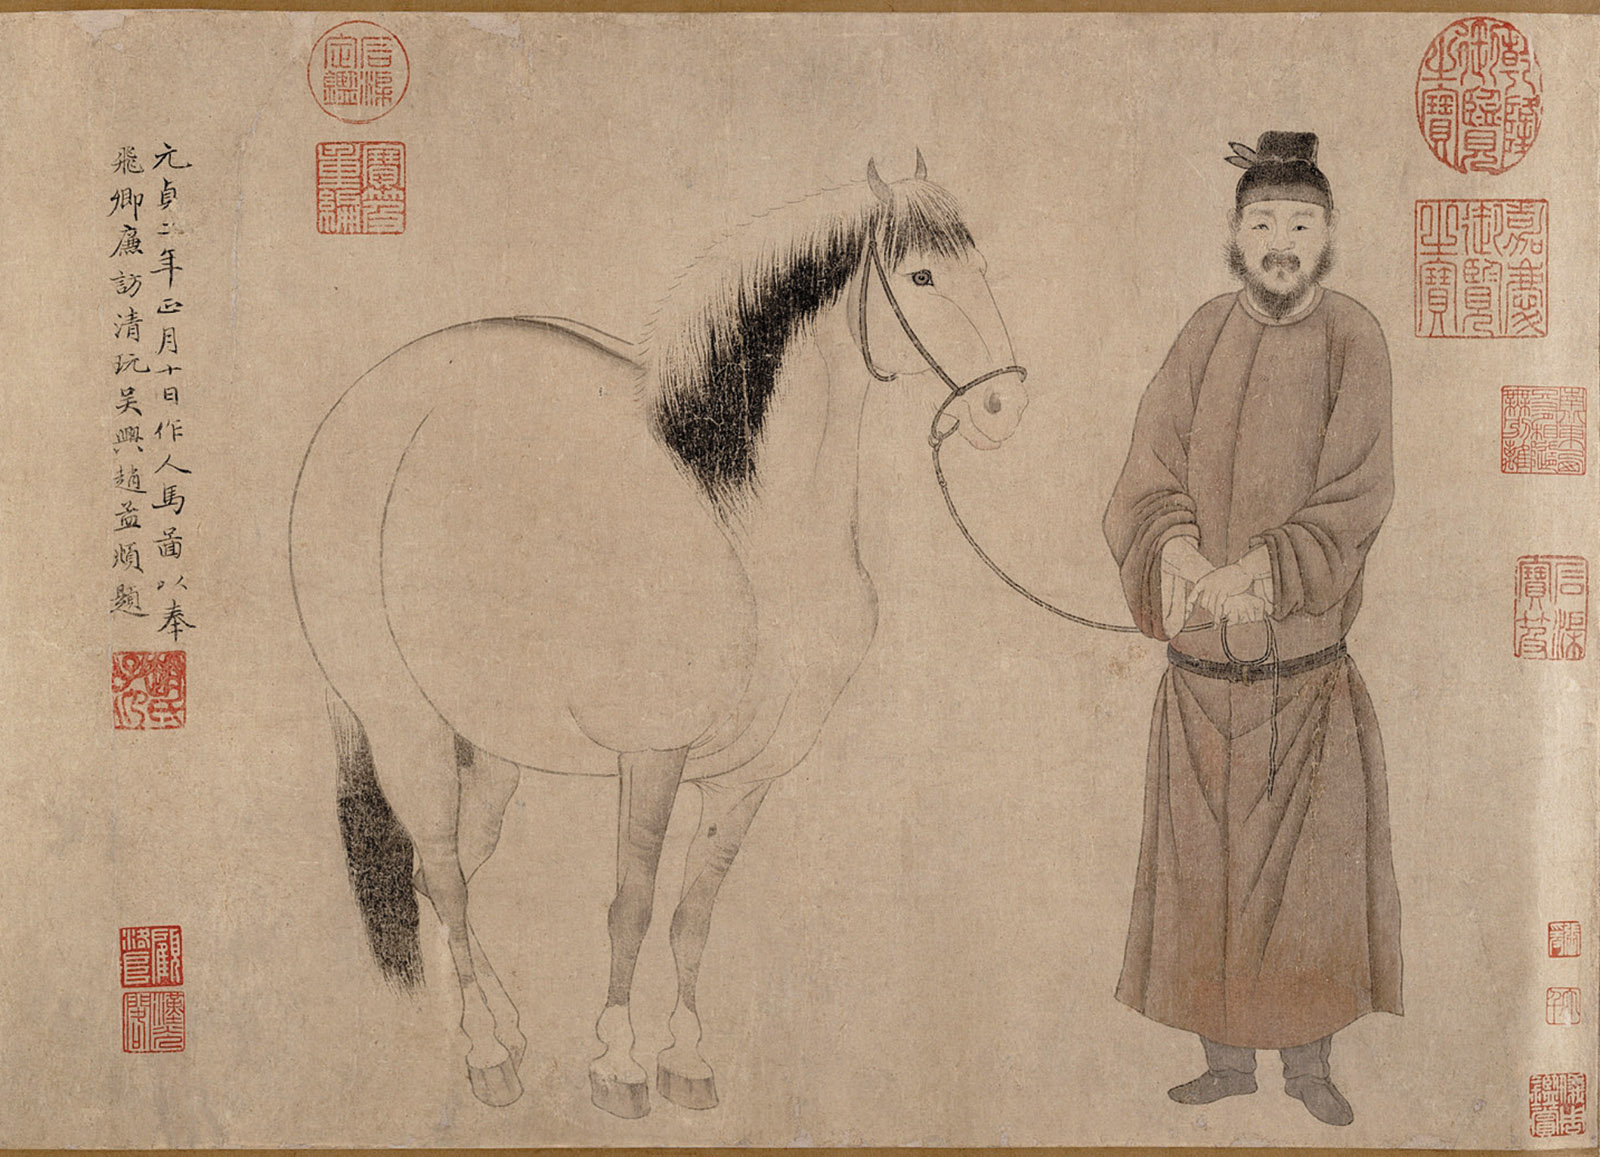 'Man and Horse'; handscroll by Zhao Mengfu, Yuan dynasty, 1296